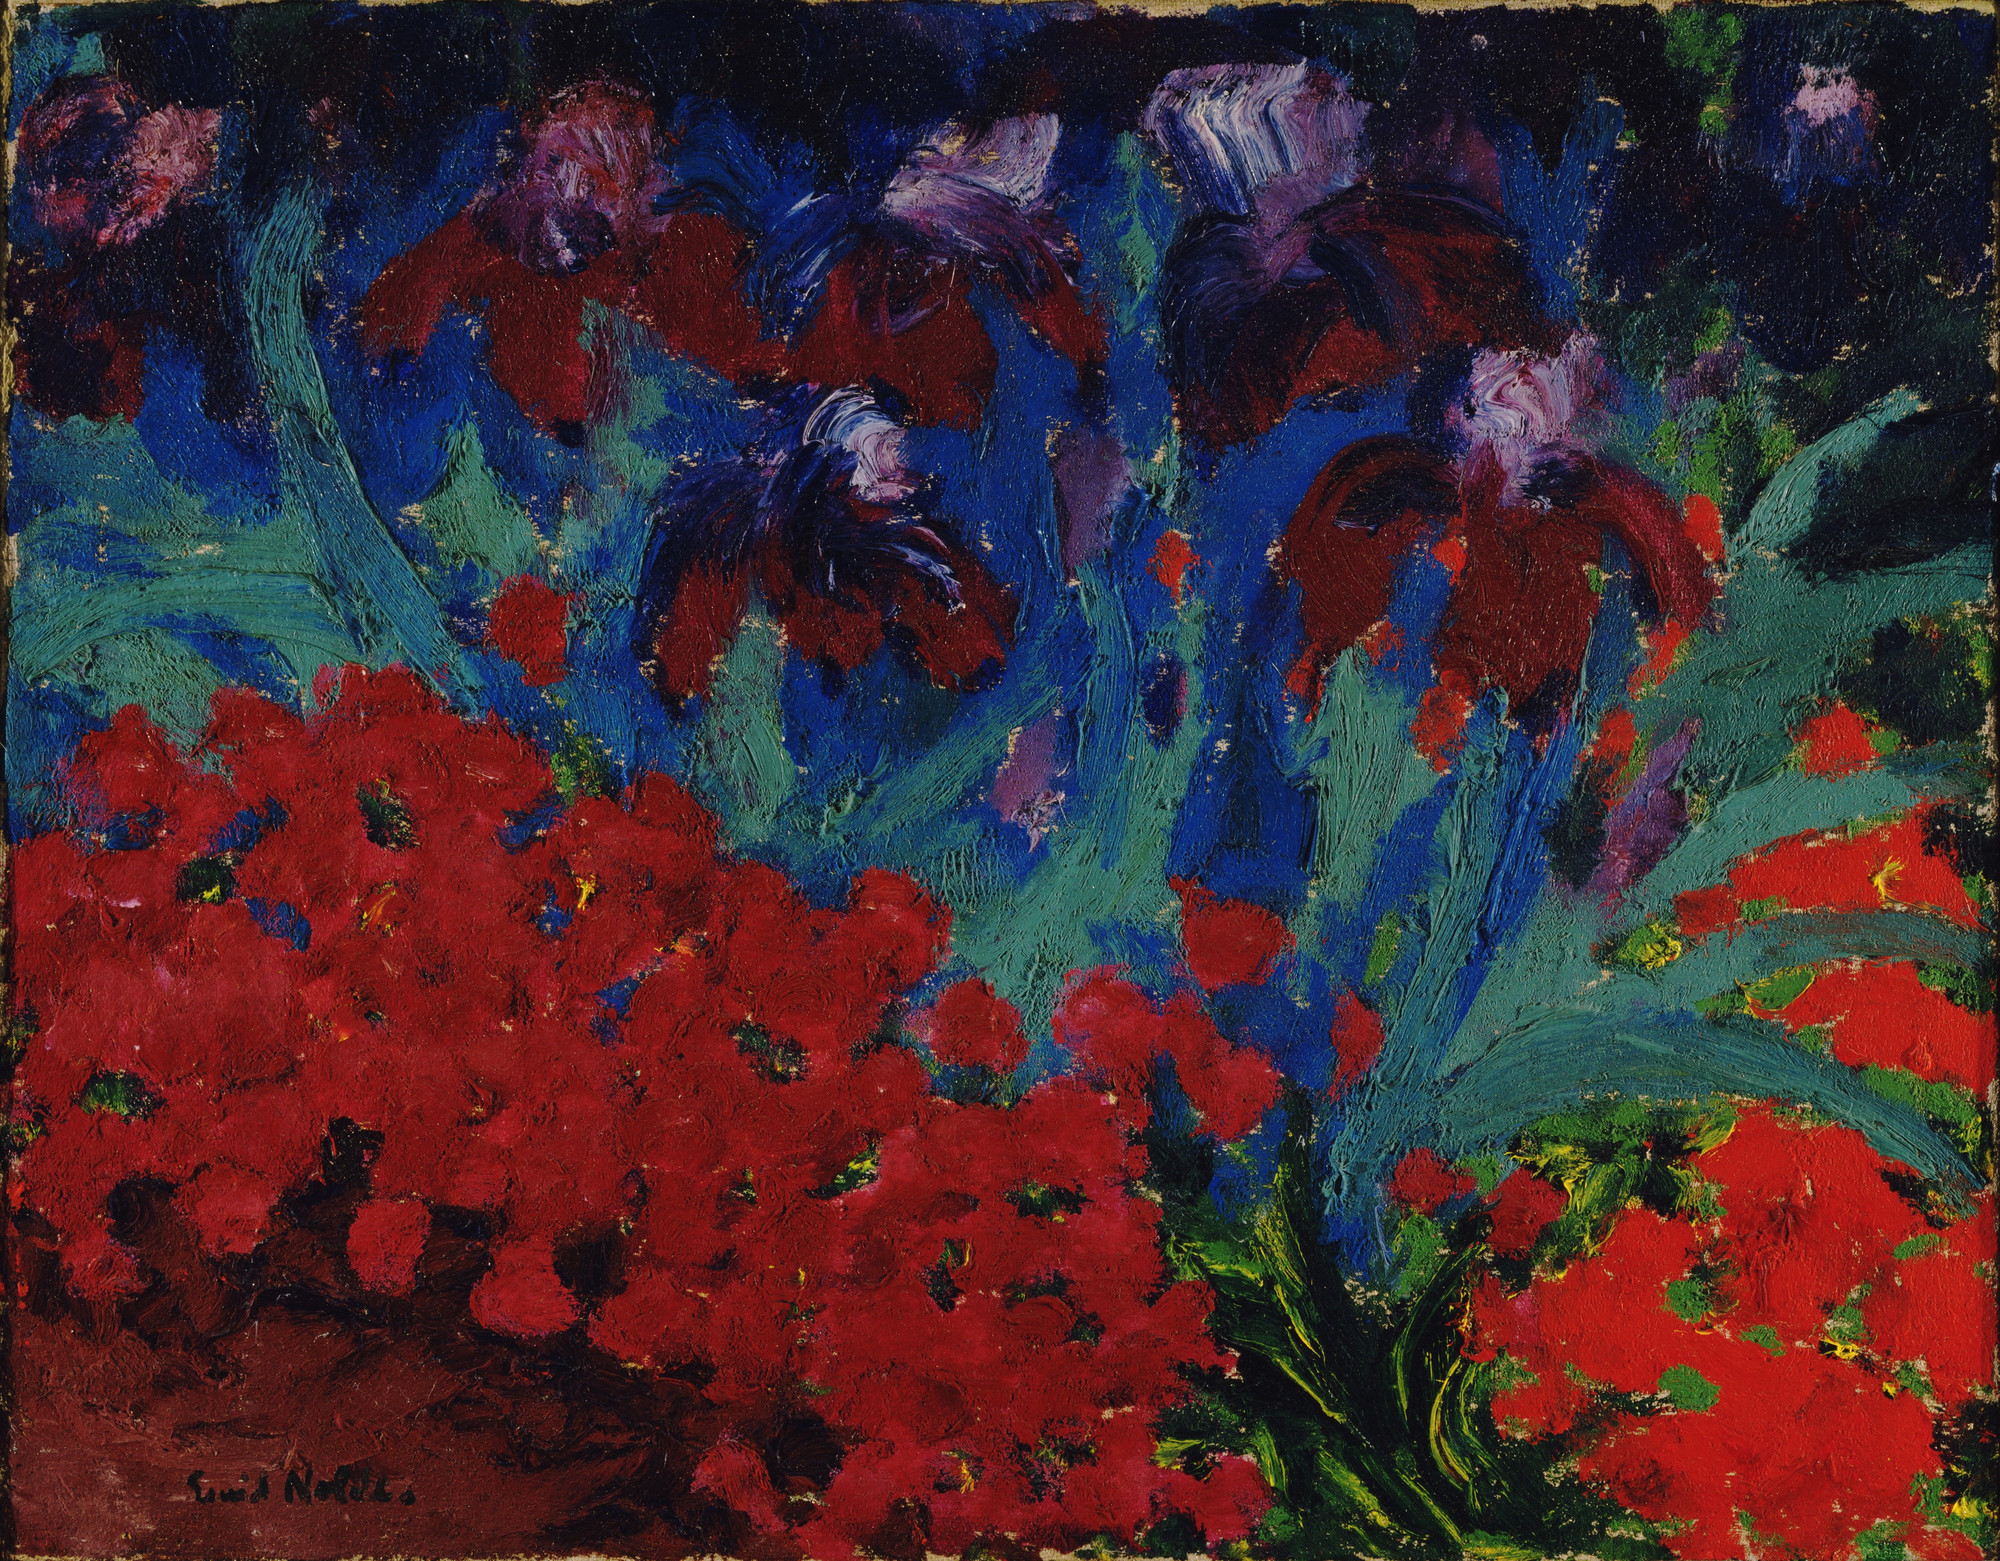 Emil Nolde. Blue and Violet Flowers. 1916